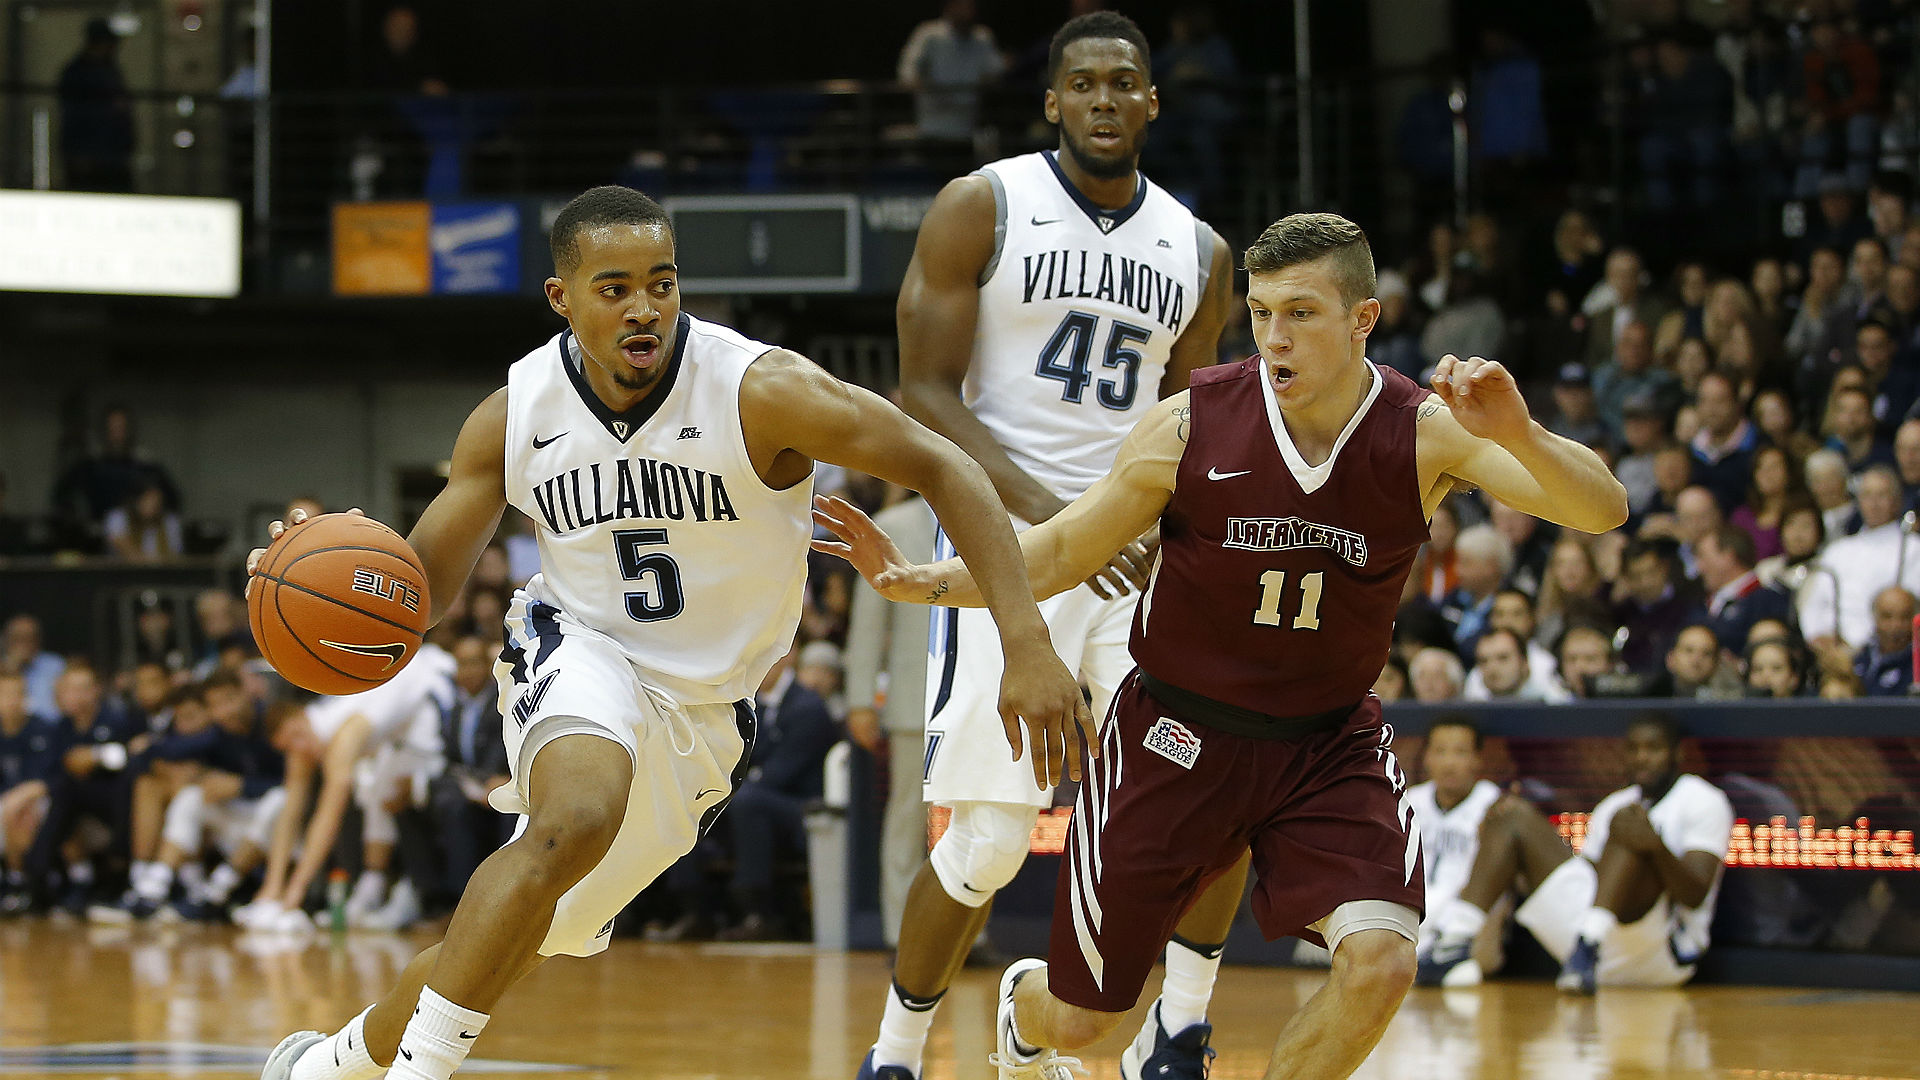 Men's Basketball Picked Fourth In BIG EAST Preseason Coaches' Poll